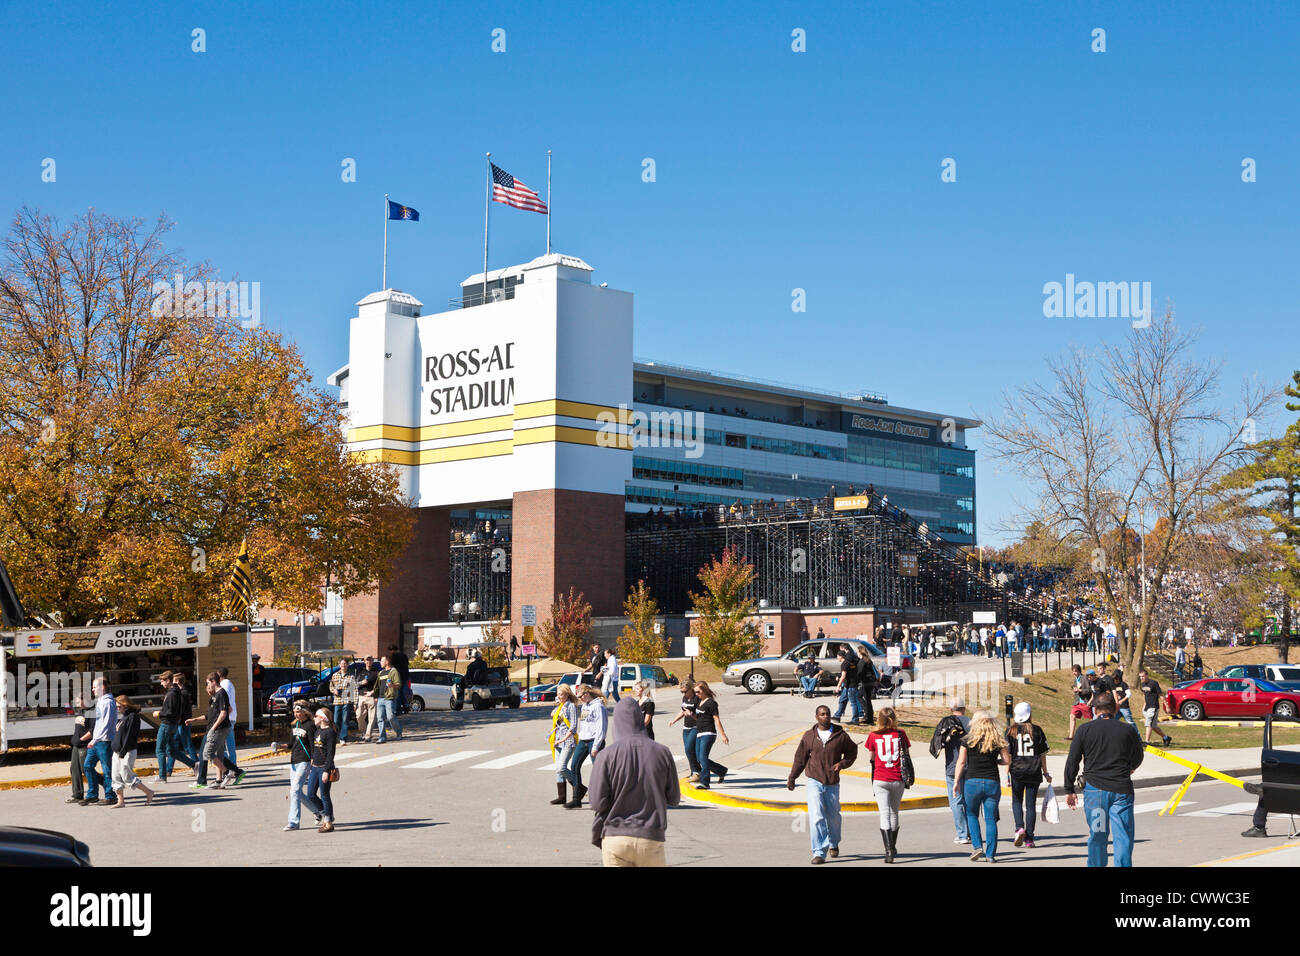 College football fans prepare for a game in Ross-Ade Stadium on the Purdue University campus in West Lafayette, - Stock Image